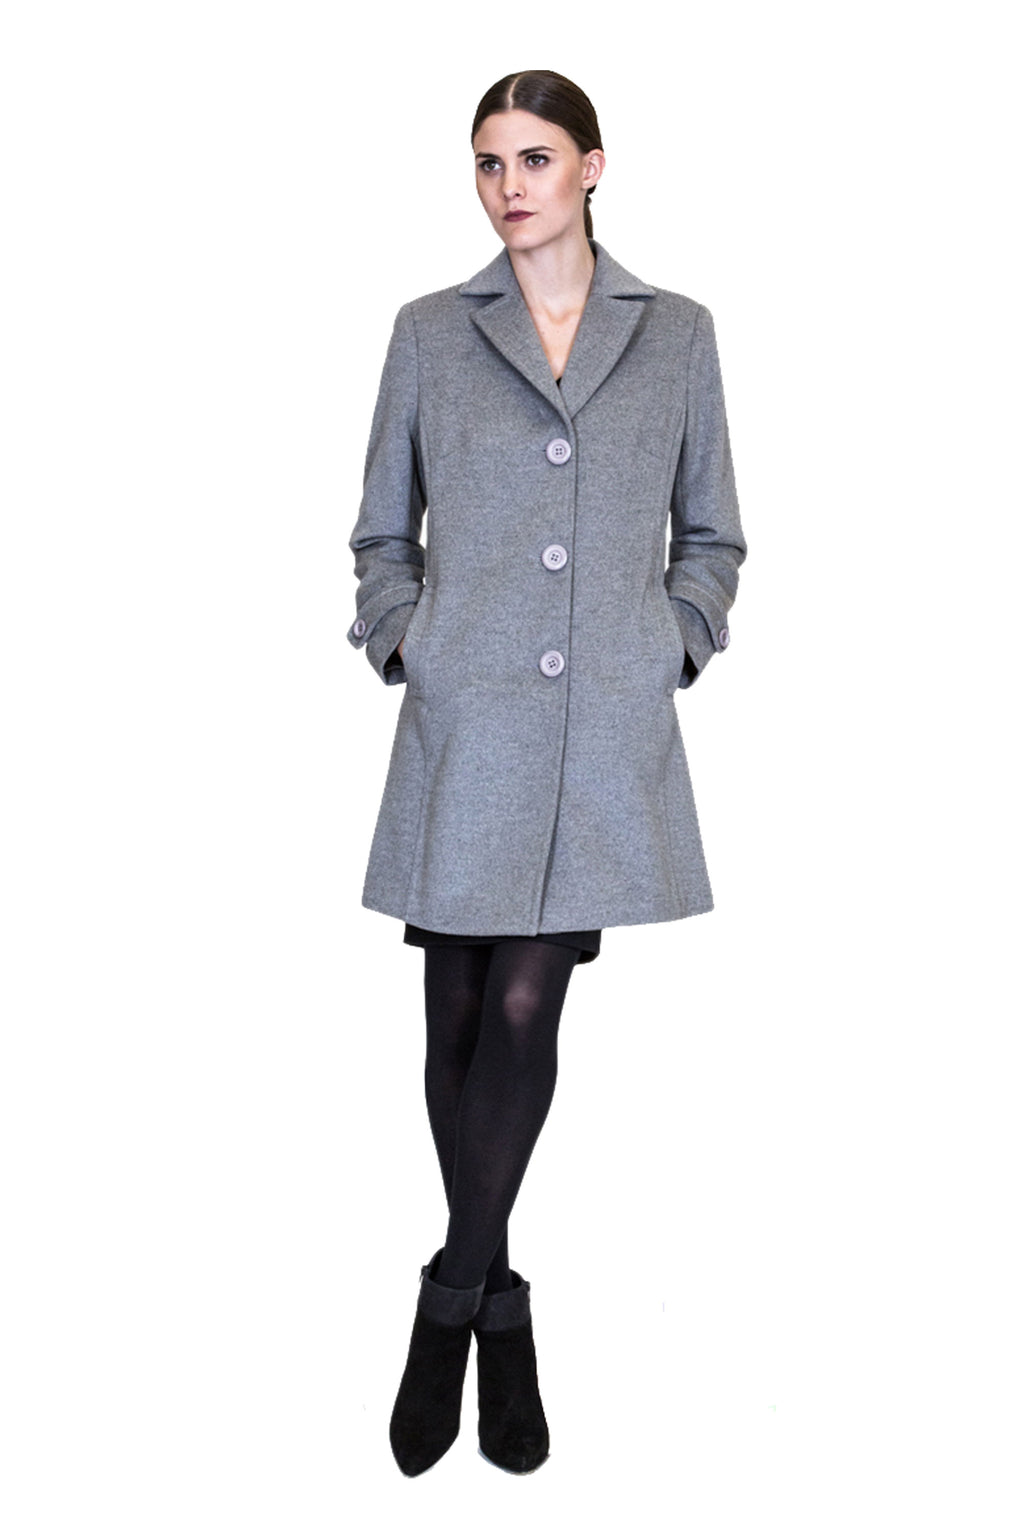 100% Cashmere Coat - Size Medium